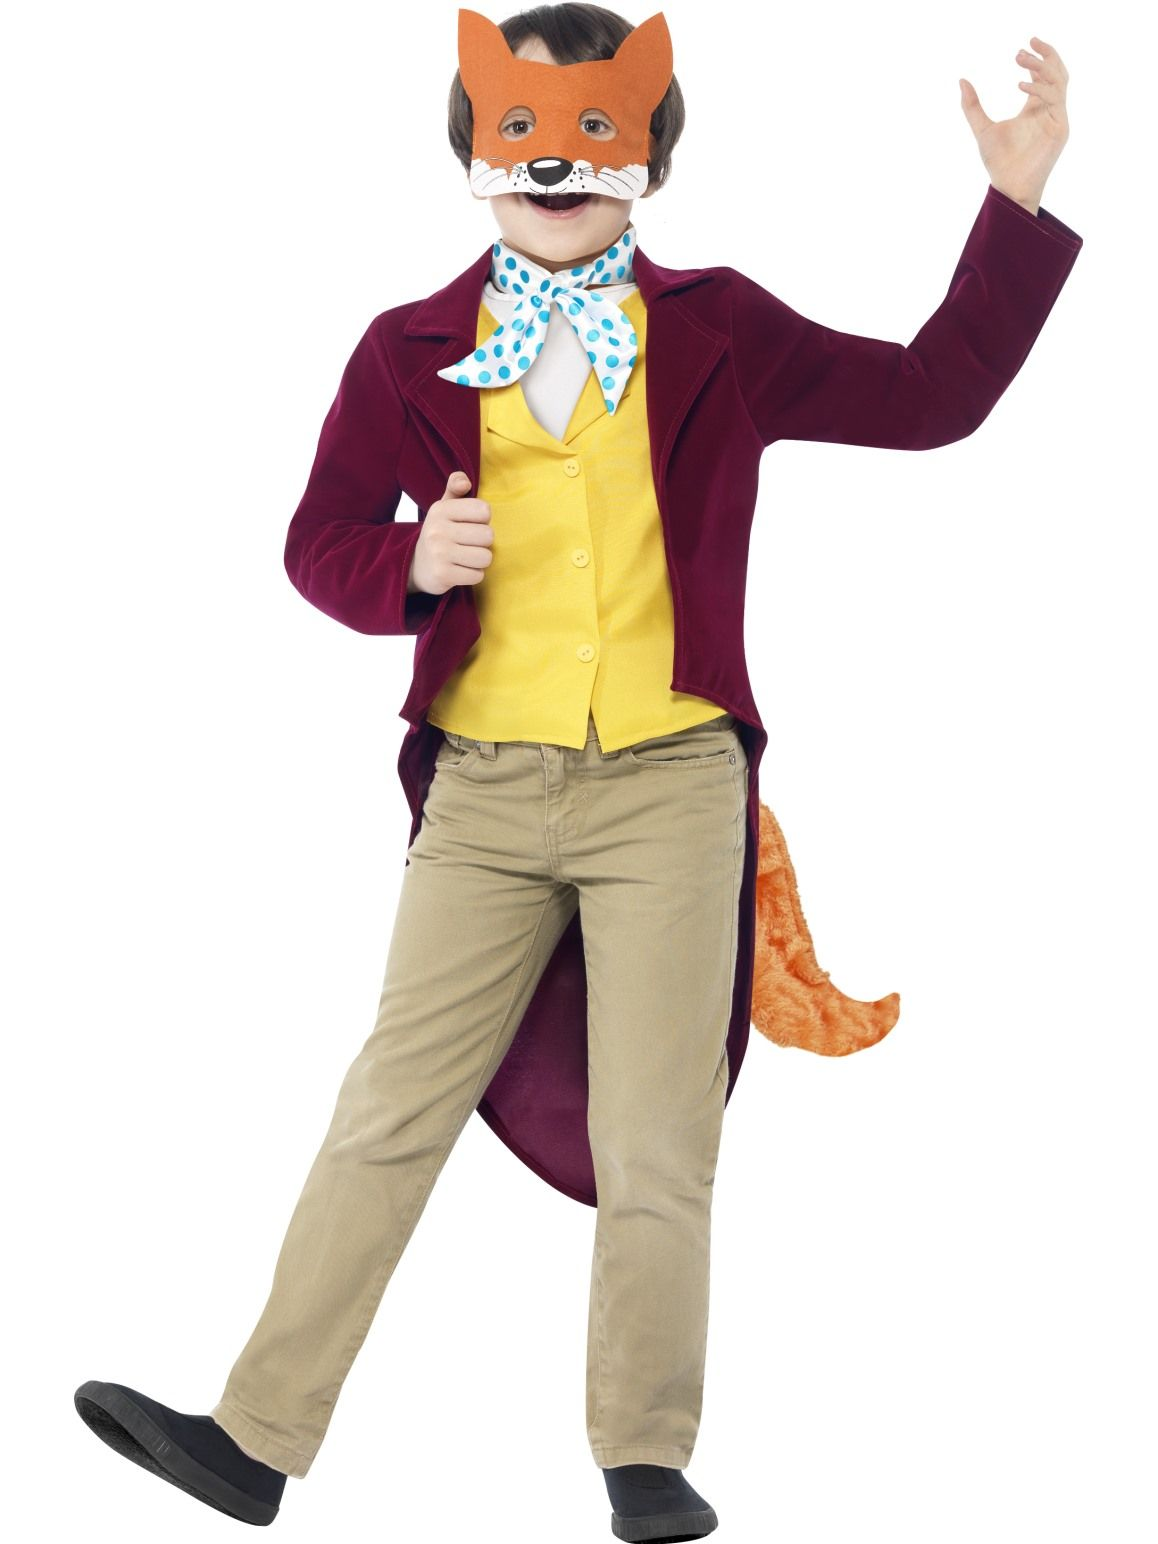 Fantastic Mr Fox Roald Dahl Child Costume  - Buy Online Only